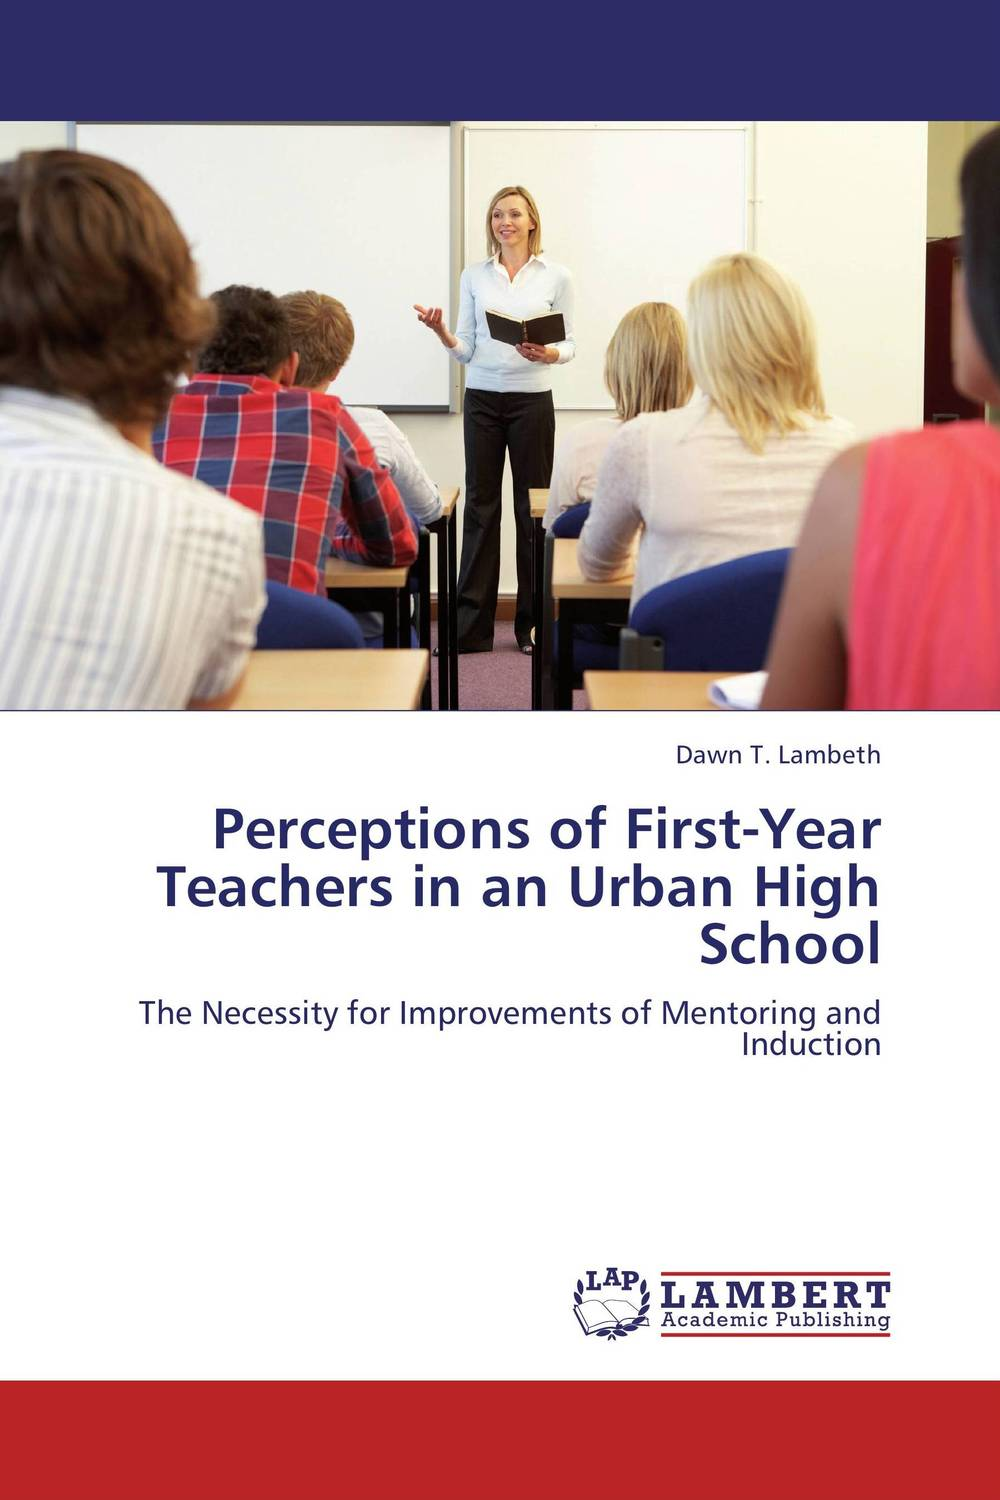 Perceptions of First-Year Teachers in an Urban High School challenges facing beginning teachers in induction and orientation